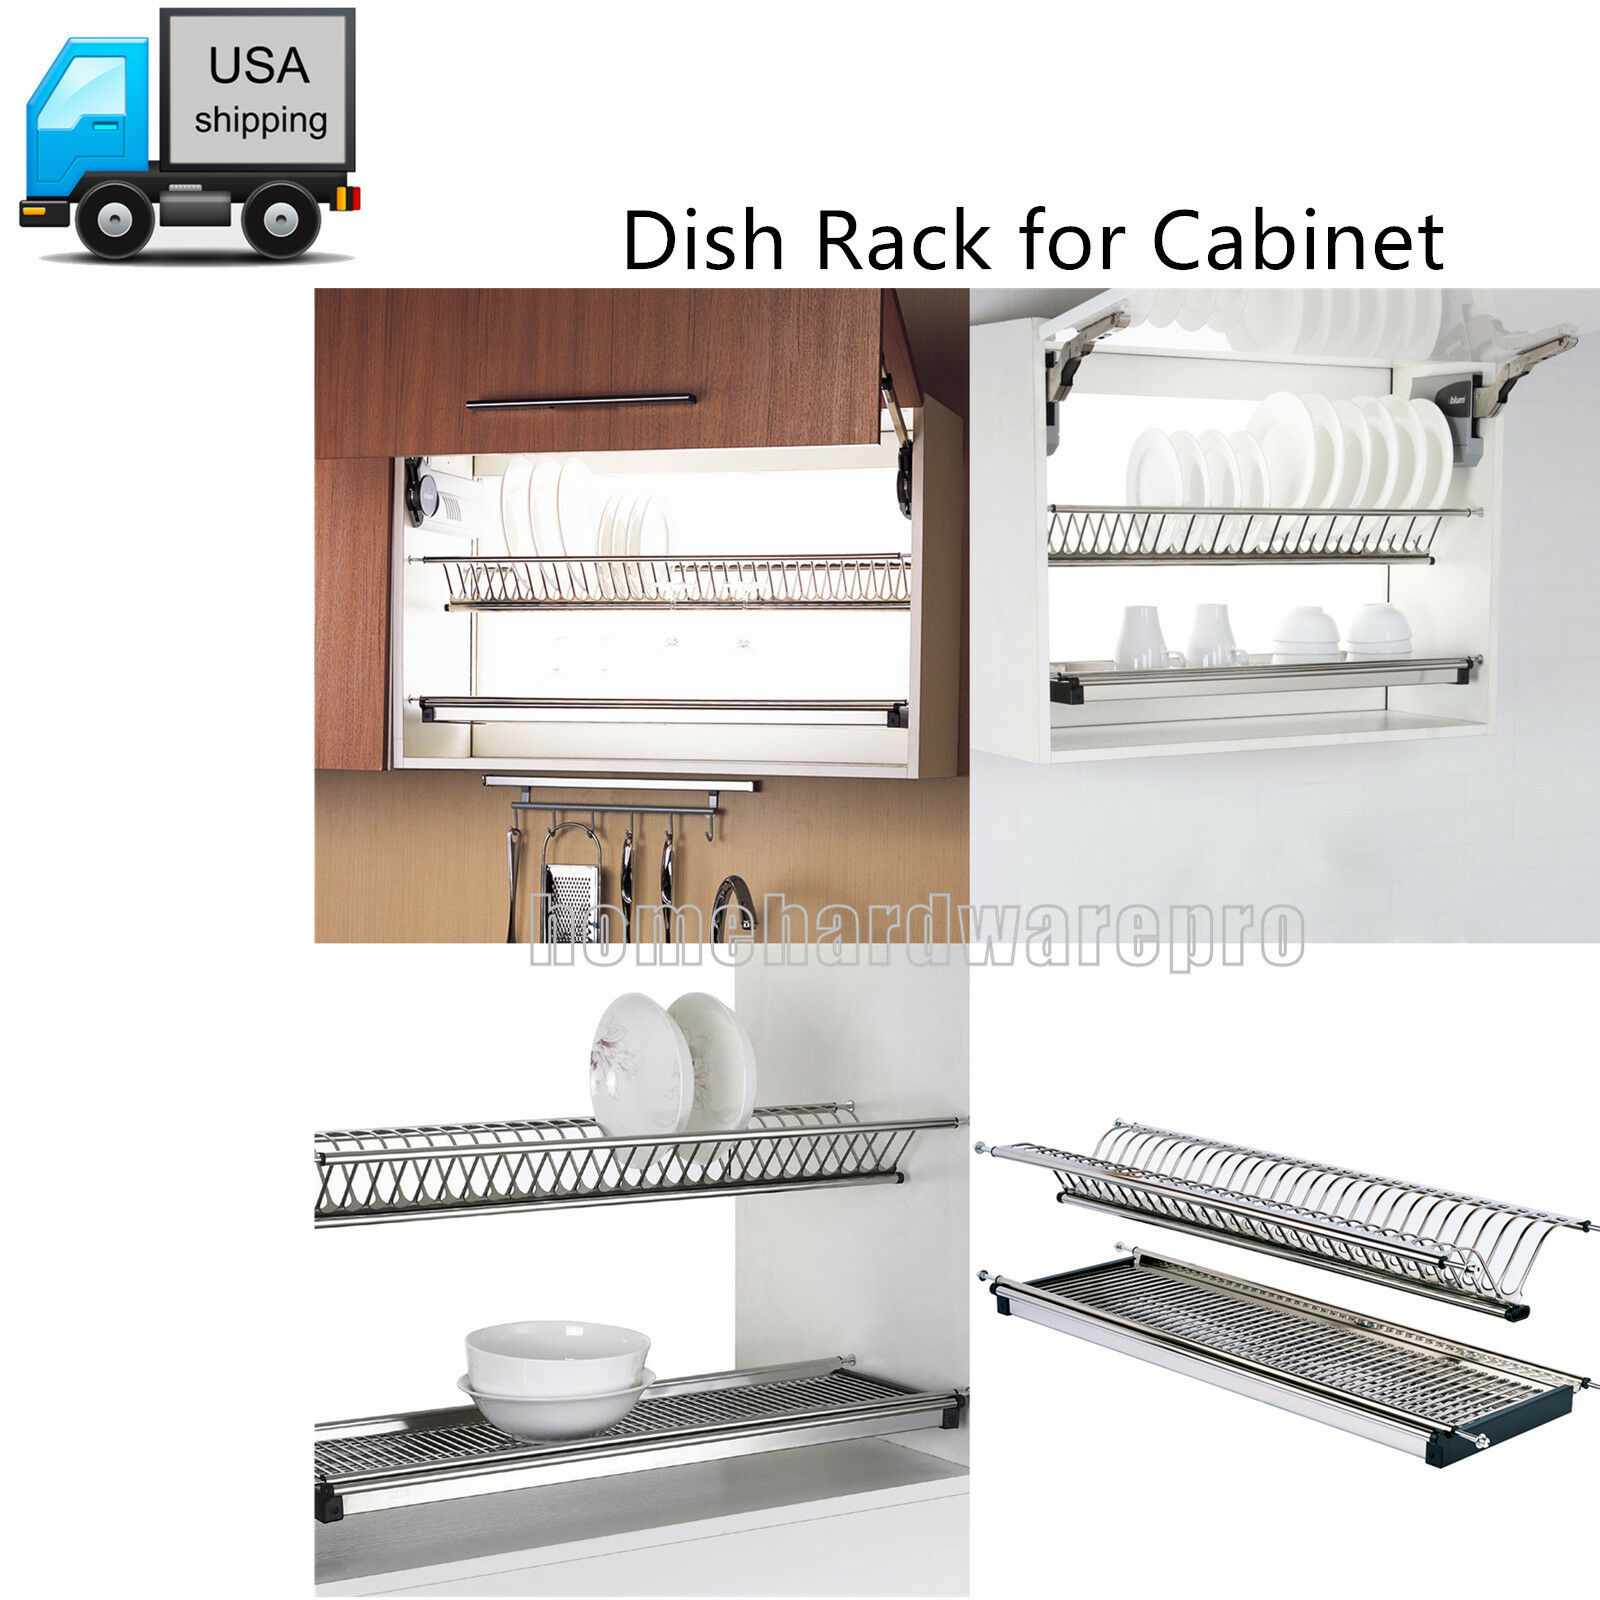 2 TIER DISH Drain Rack 304 Stainless Steel for Kitchen Cabinet Plate ...